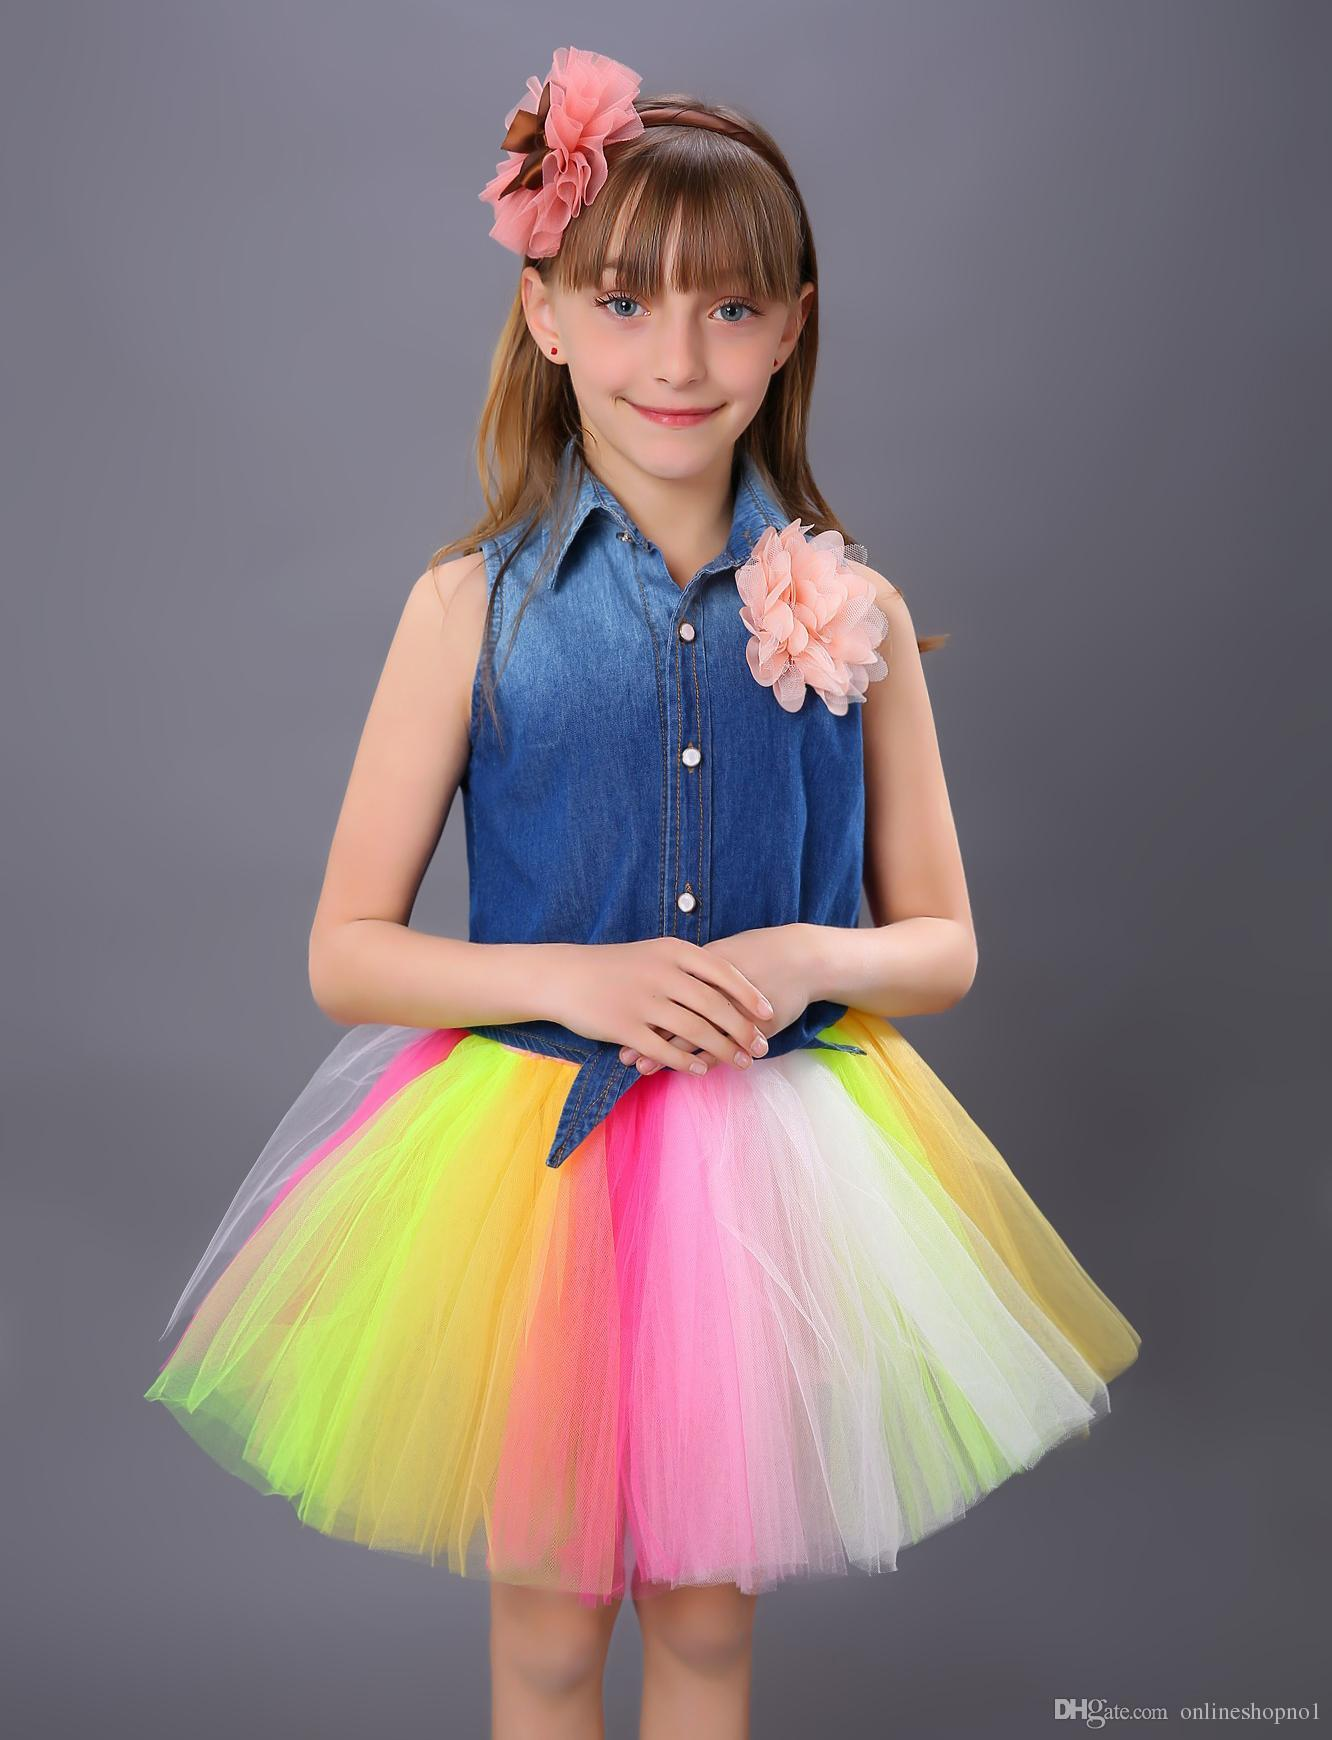 Girls skirts and skorts are just the beginning, however. You'll find girls shorts and other outfit essentials, too! And we offer a variety of sizes and style as well, from baby girl clothes to big girls dresses.